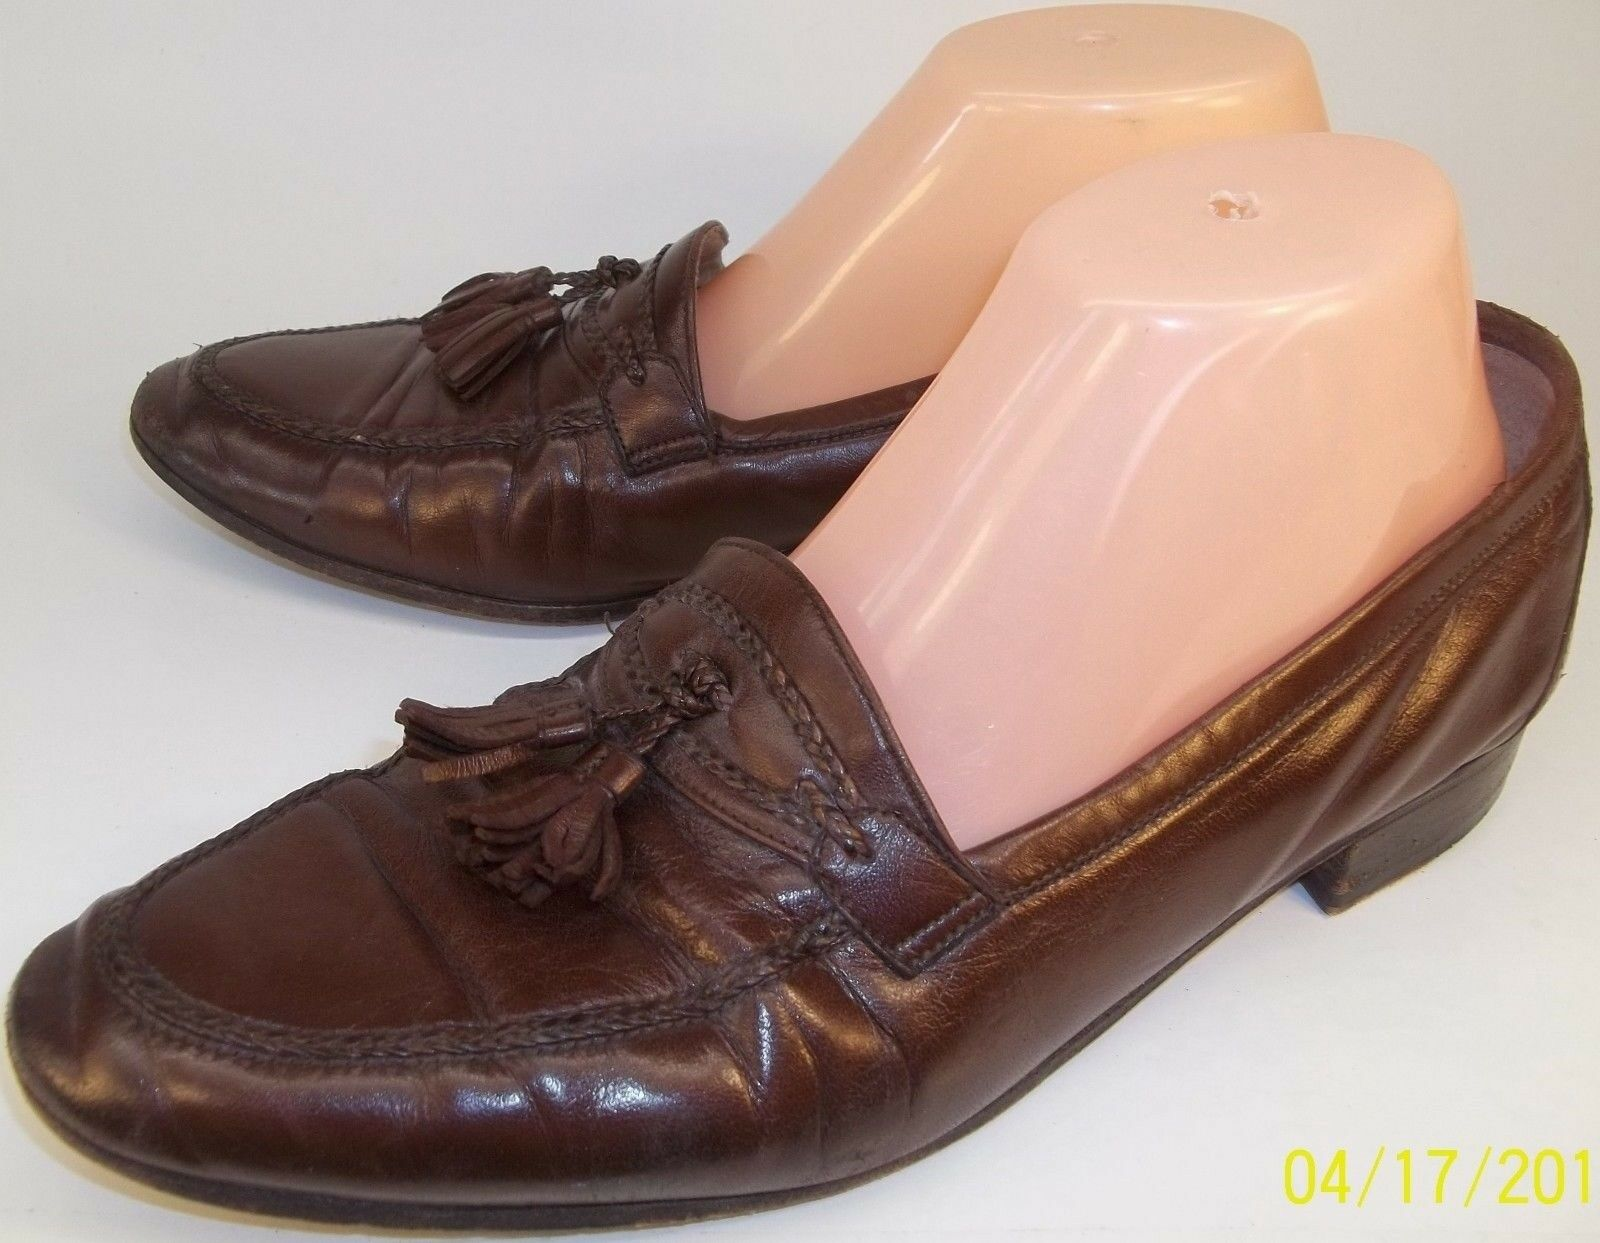 Bally Brown Albion Uomo Shoes   8M Brown Bally Pelle Tassel Loafers Wear to Work Italy 41 6e82a3